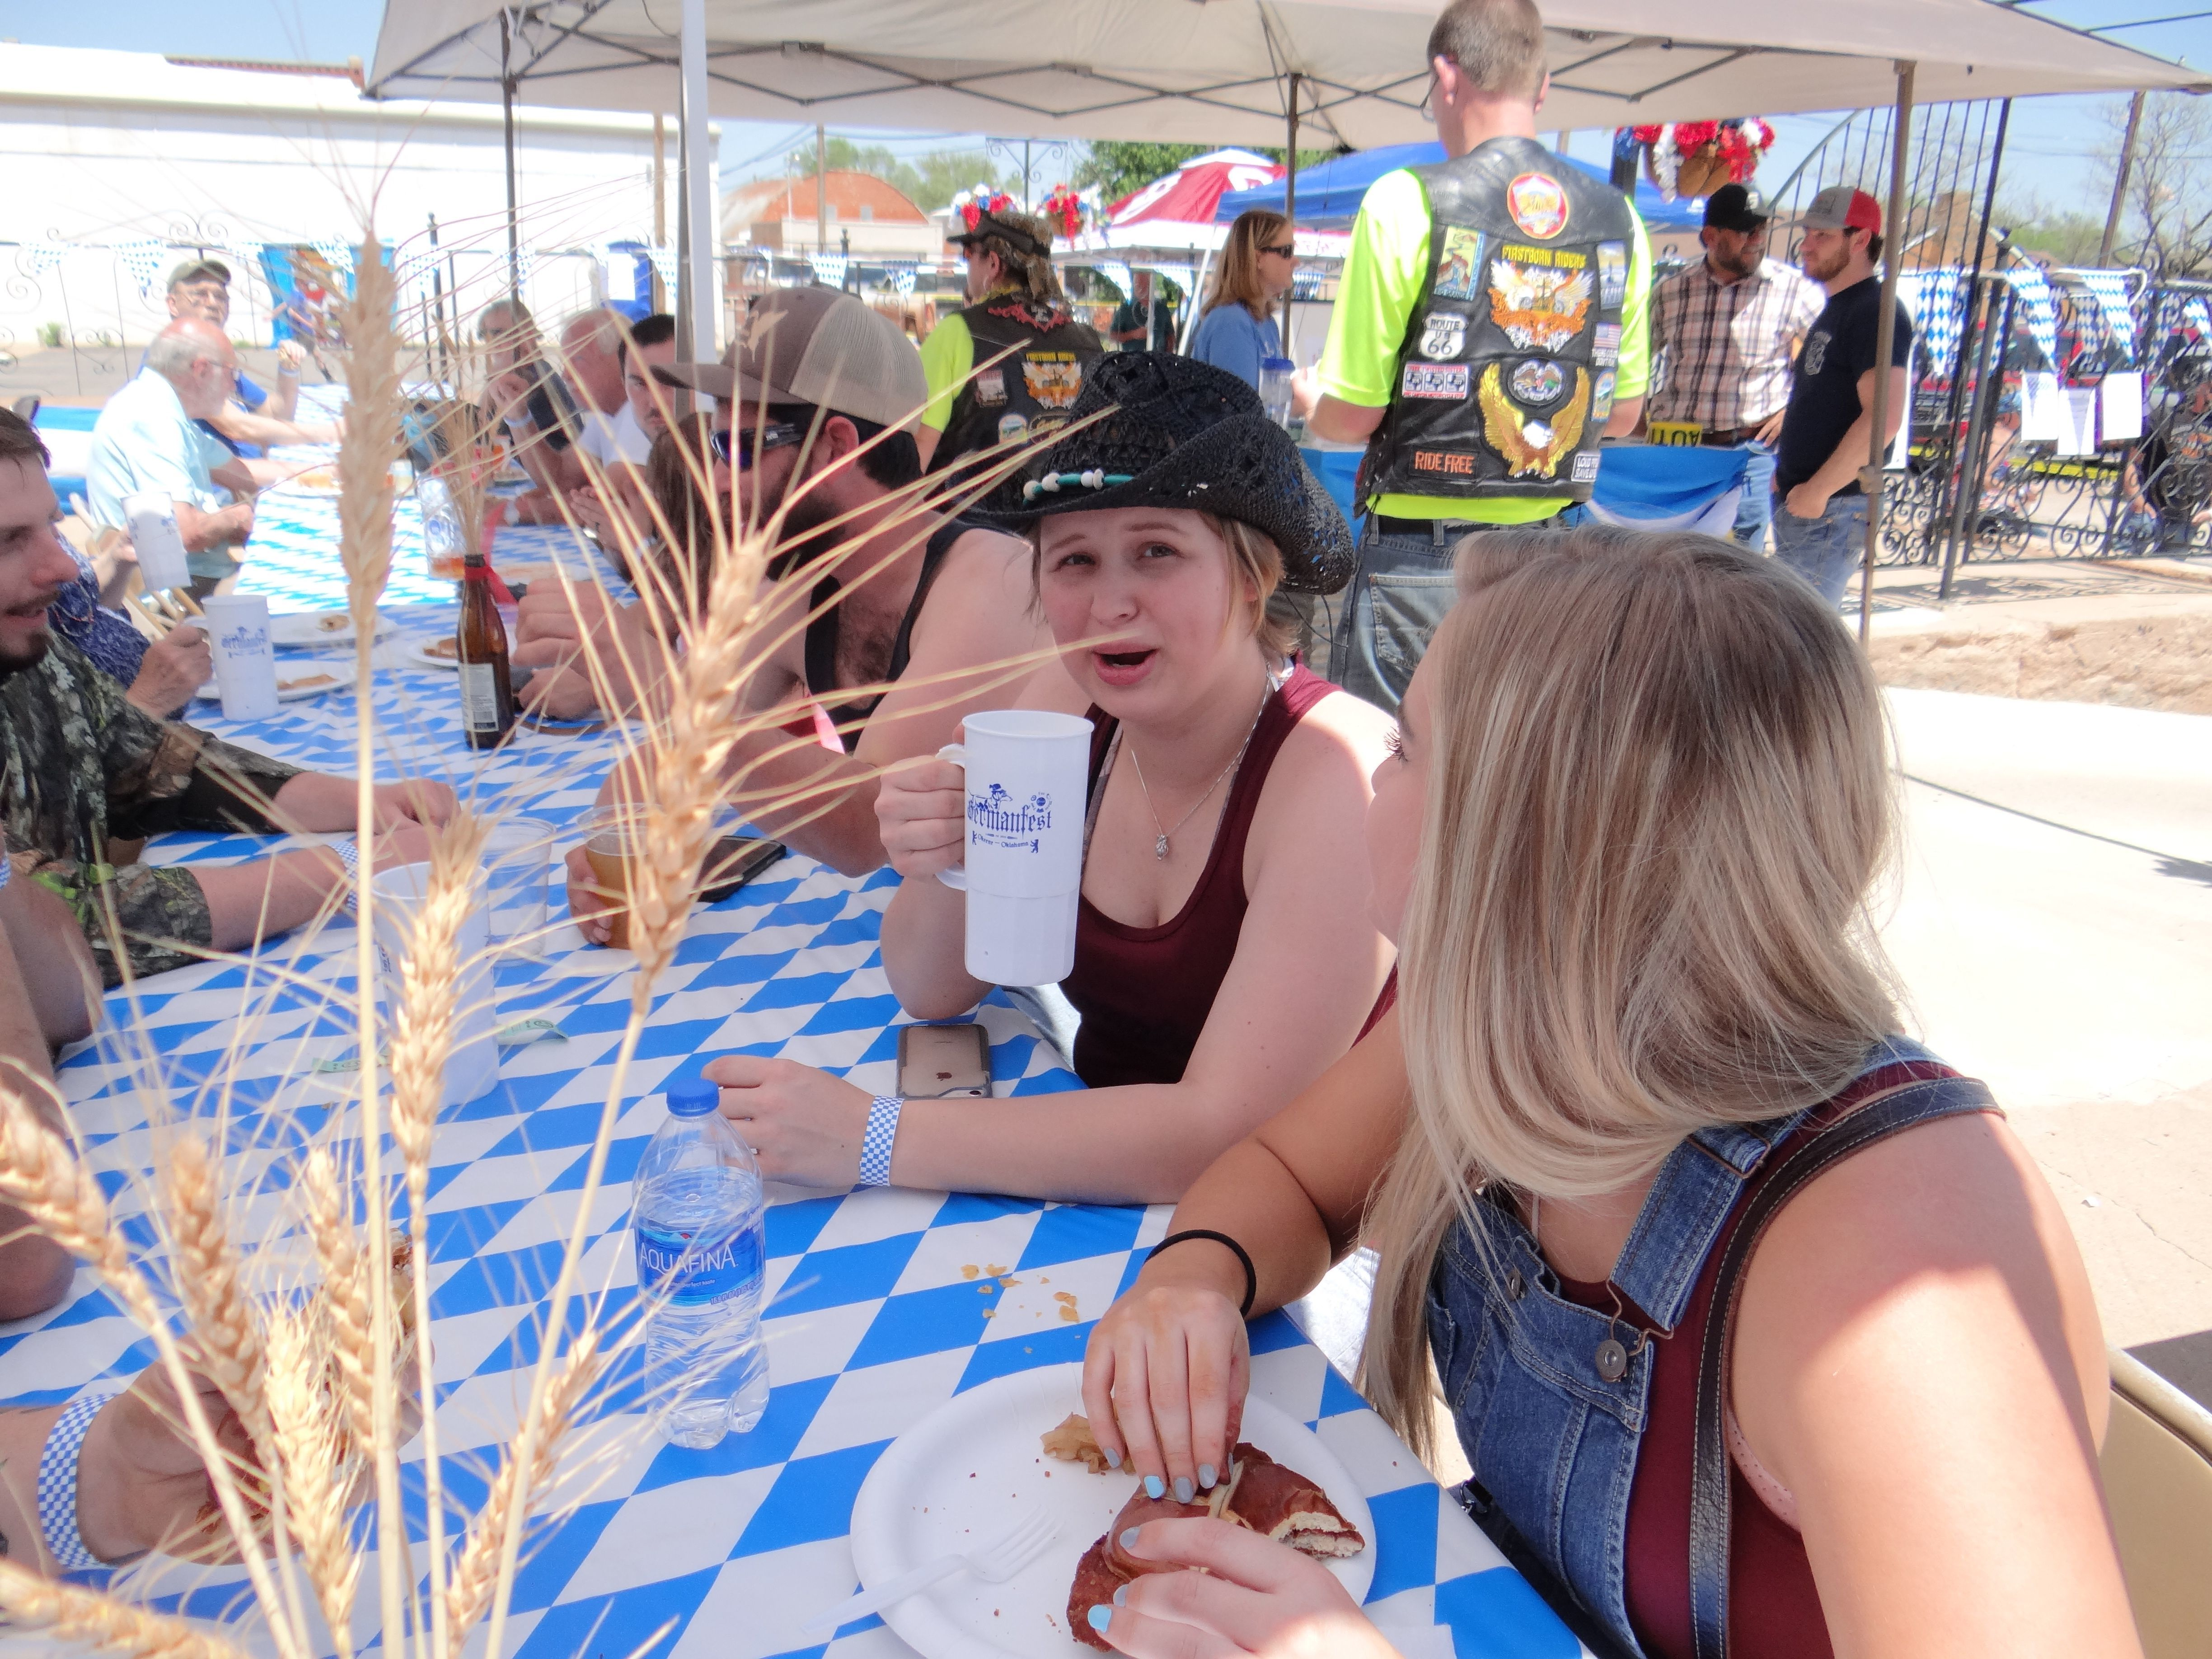 Explore the Food & Drinks for our 2021 GermanFest